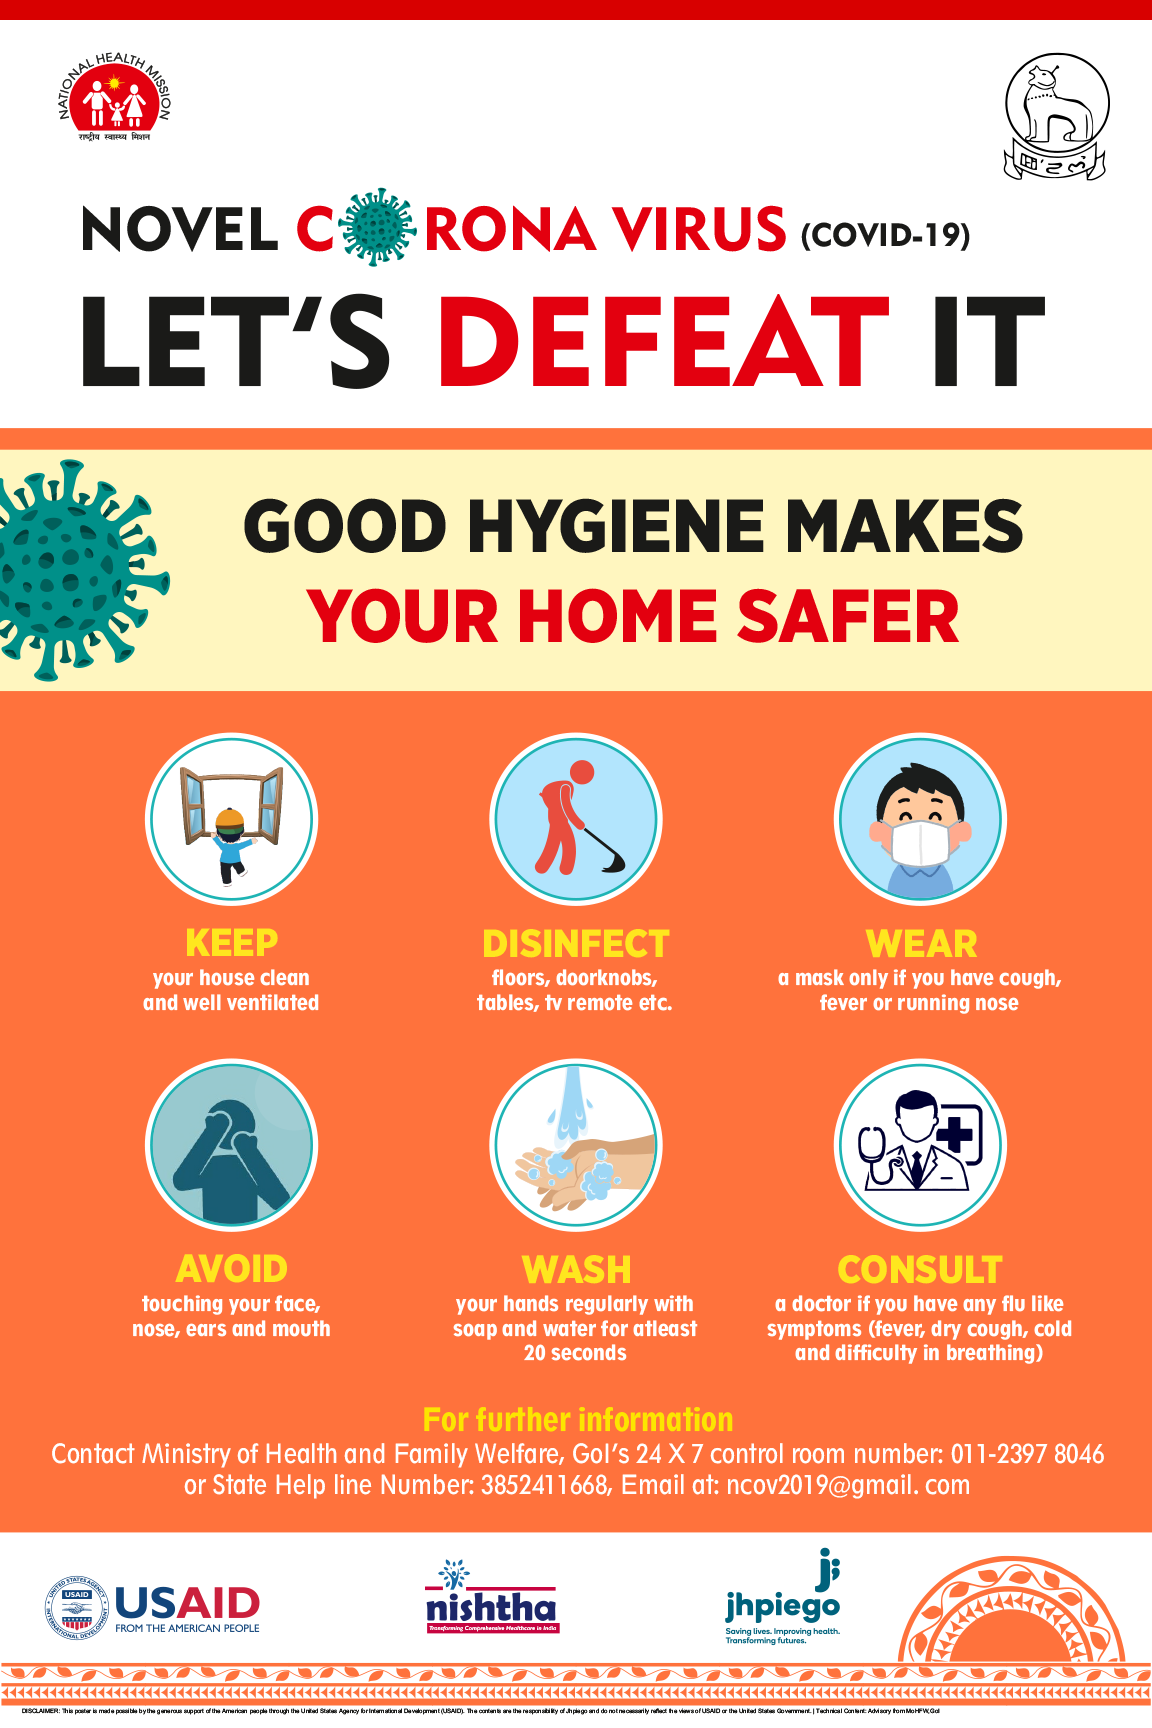 Good Hygiene Makes Your Home Safer.